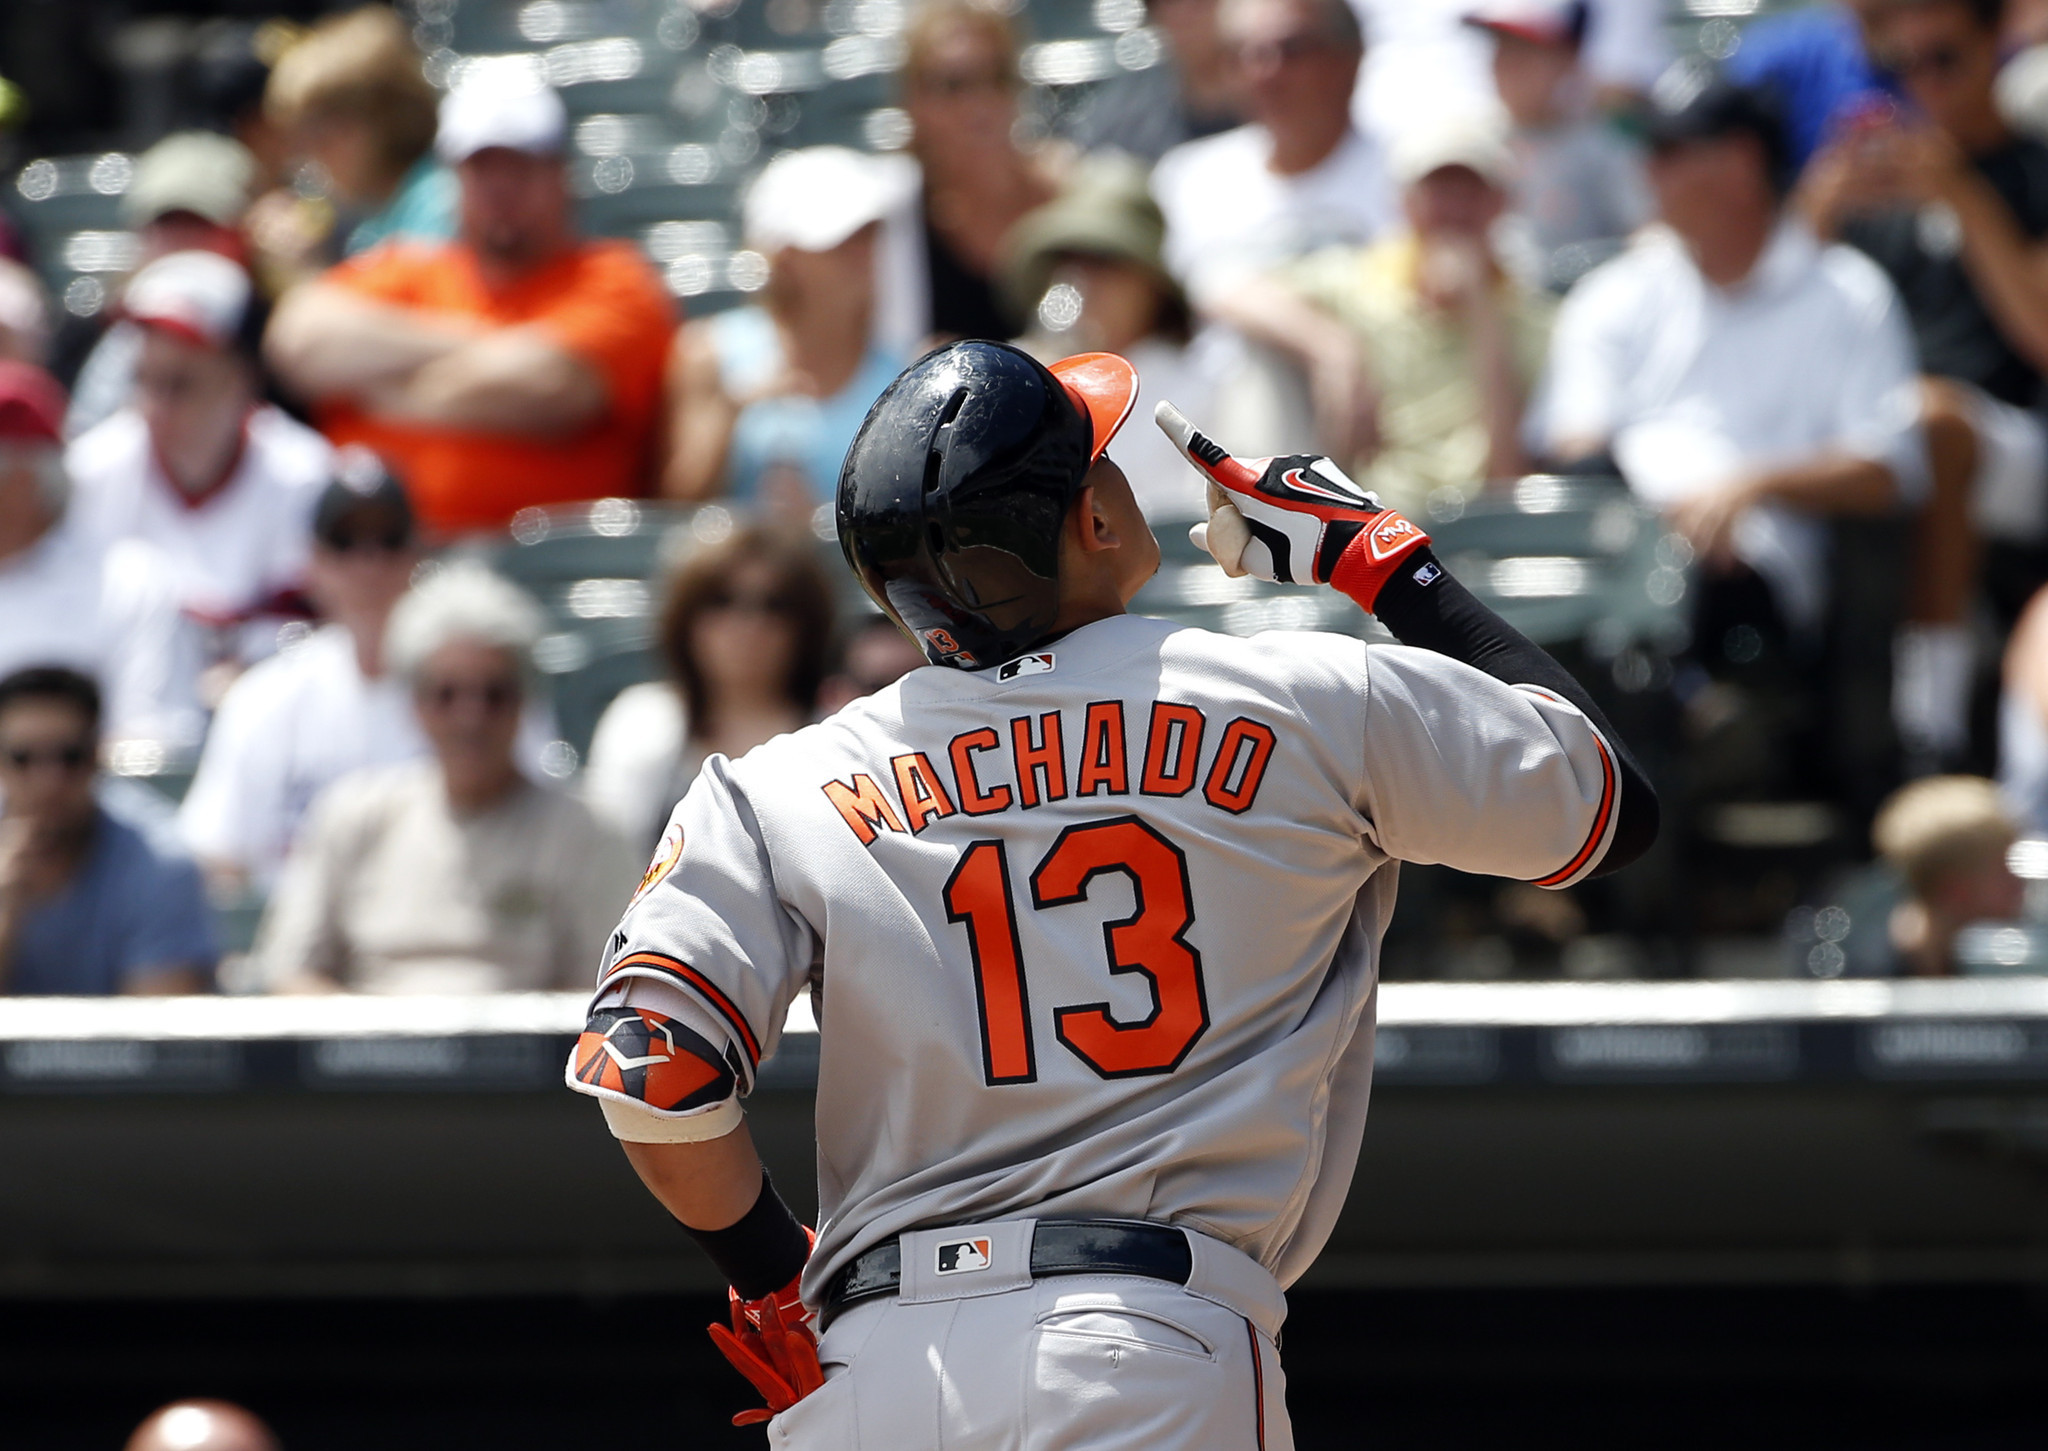 Don't Want Machado in Philly? You're an Idiot.